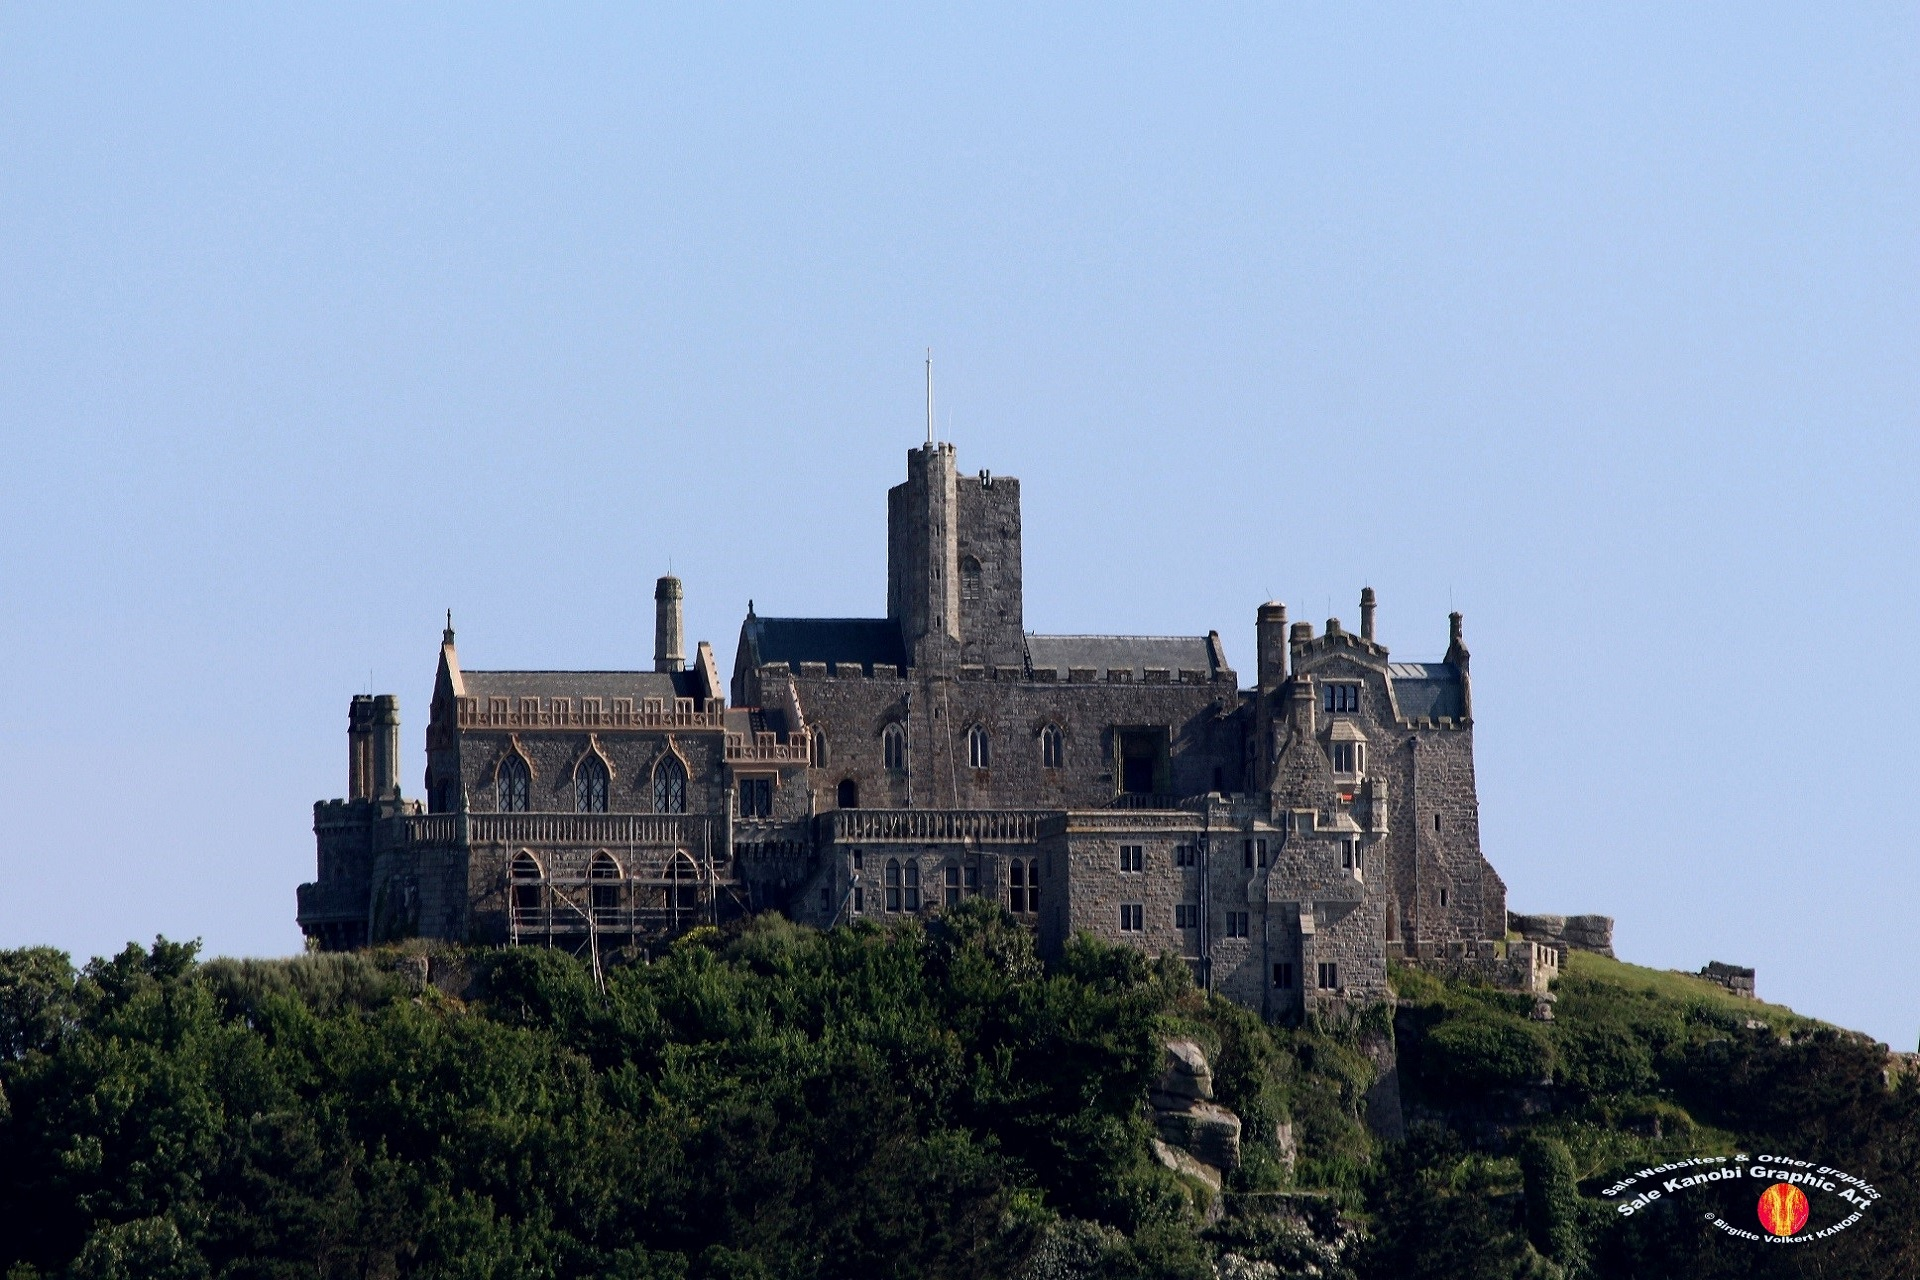 St. Michael's Mount 2 - South South East of St. Ives